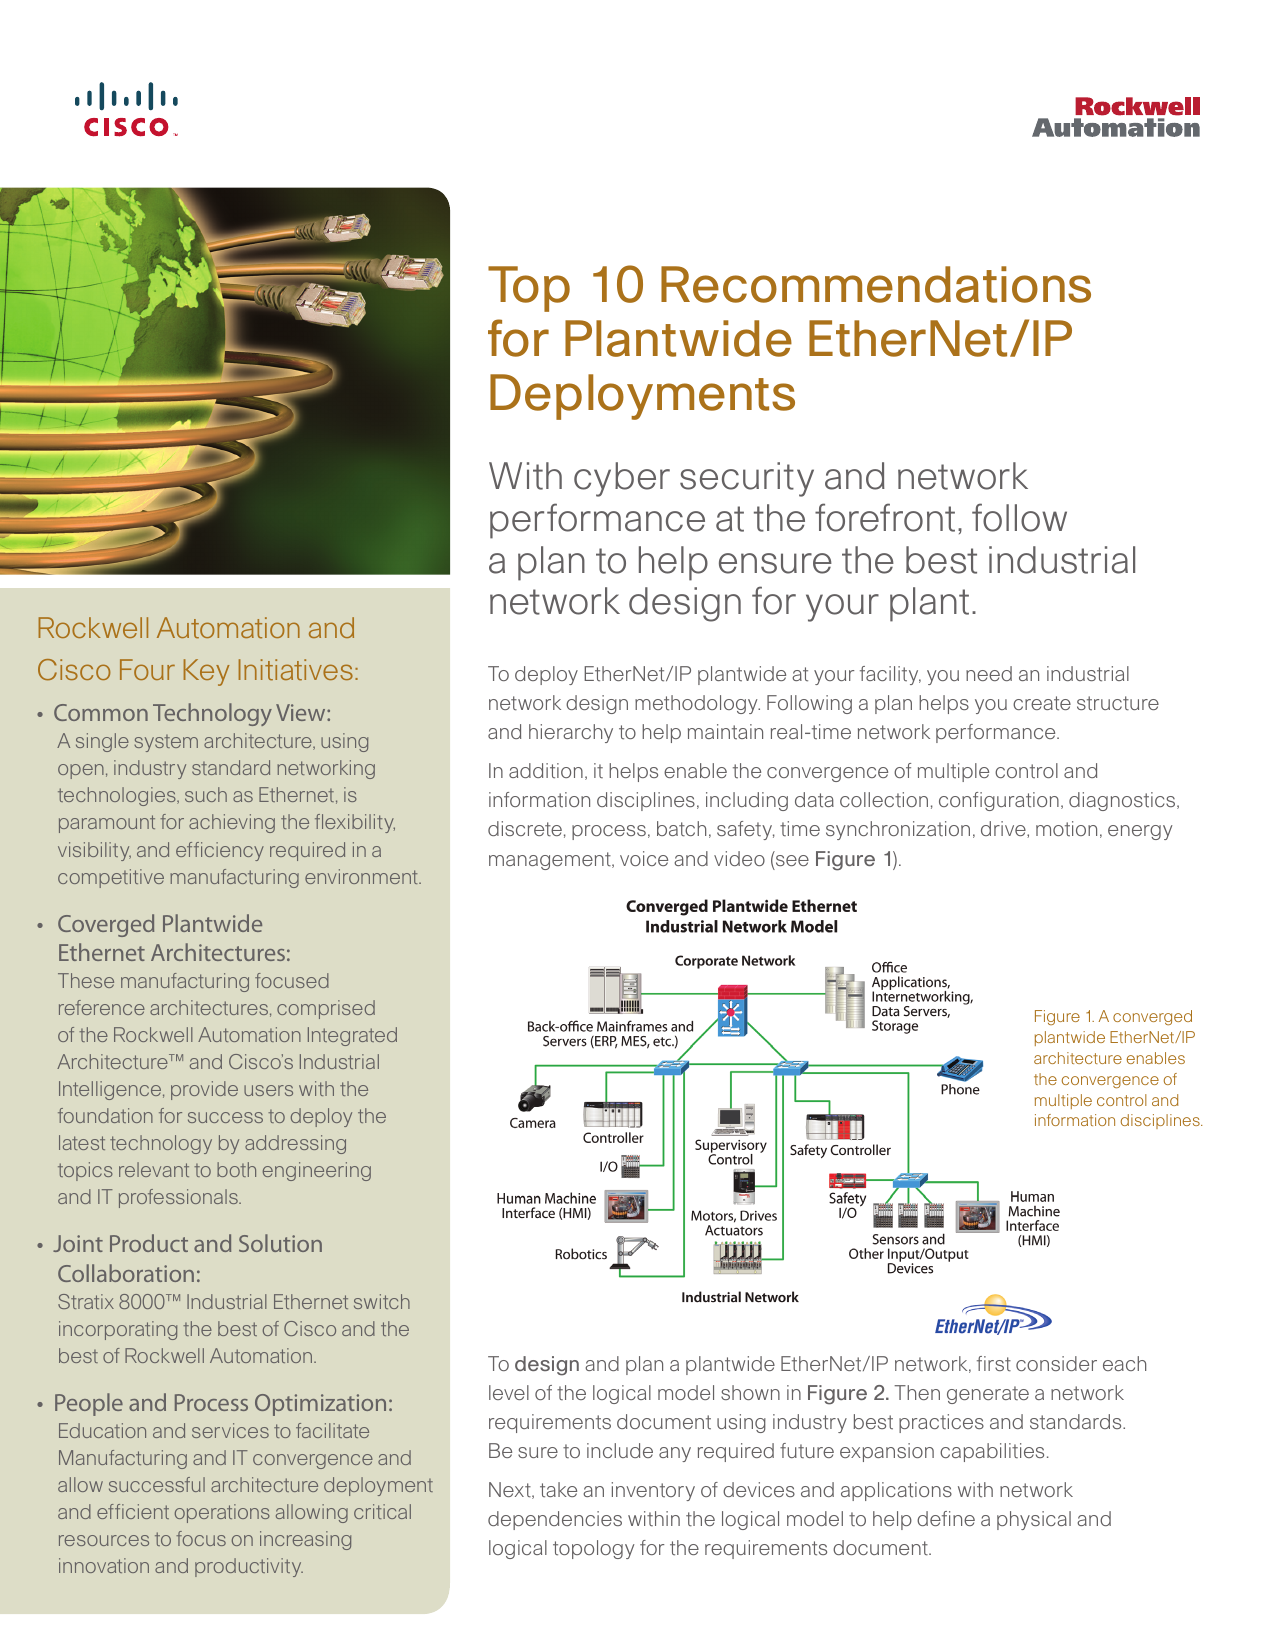 Top 10 Recommendations for Plantwide EtherNet/IP Deployments